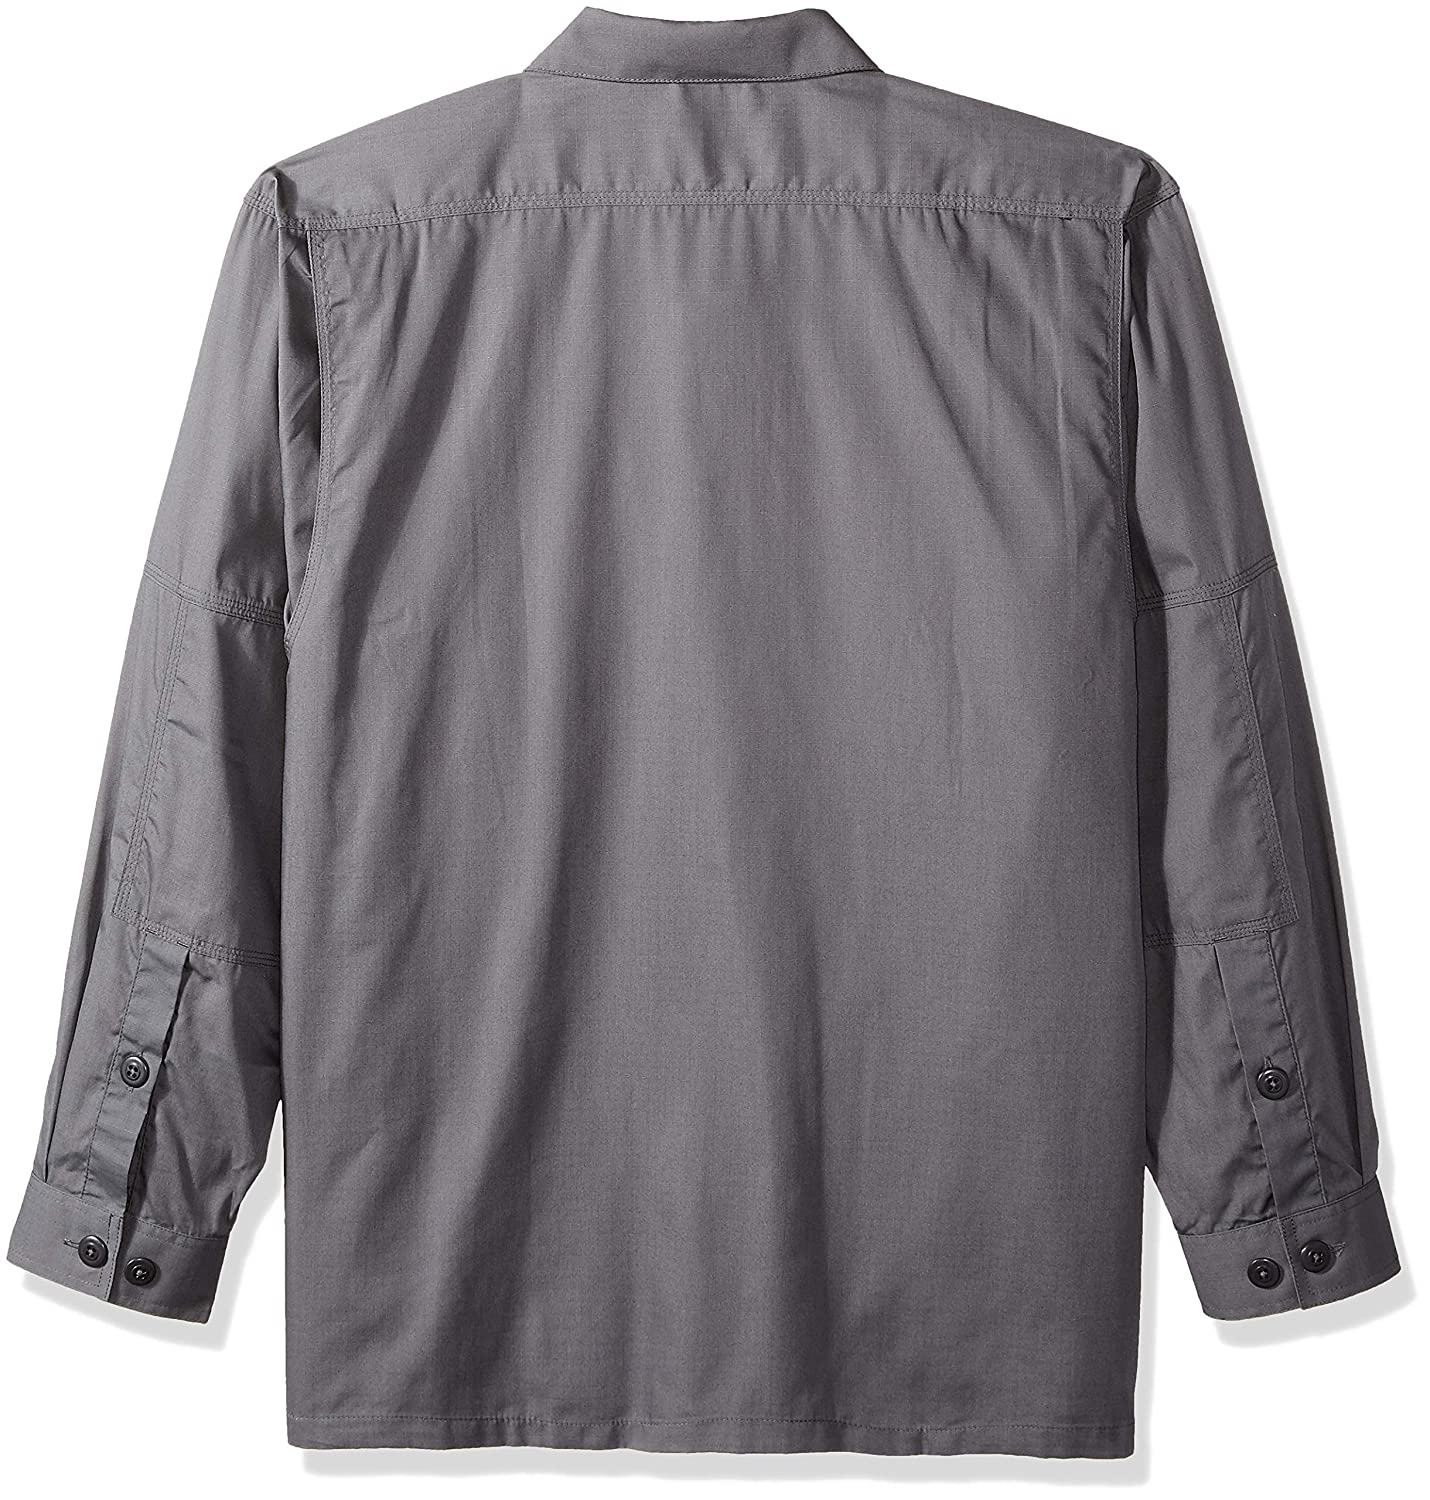 5.11 Mens Tactical Taclite Polyester-Cotton Ripstop Fabric TDU Long-Sleeve Shirt Style 72054